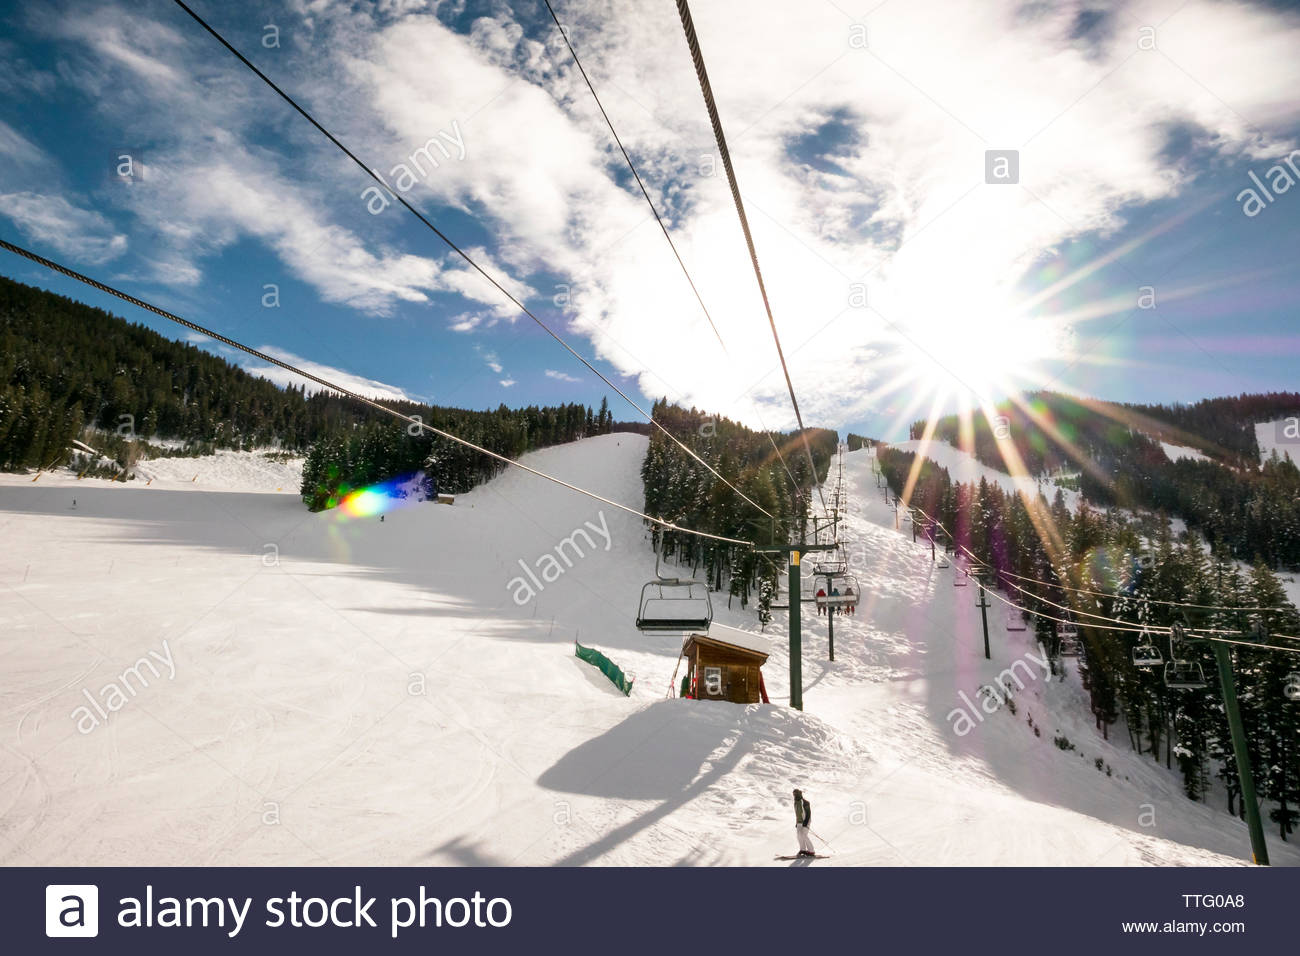 Ski lifts and skiiers on a sunny blue bird day in Sun Valley, Idaho. - Stock Image